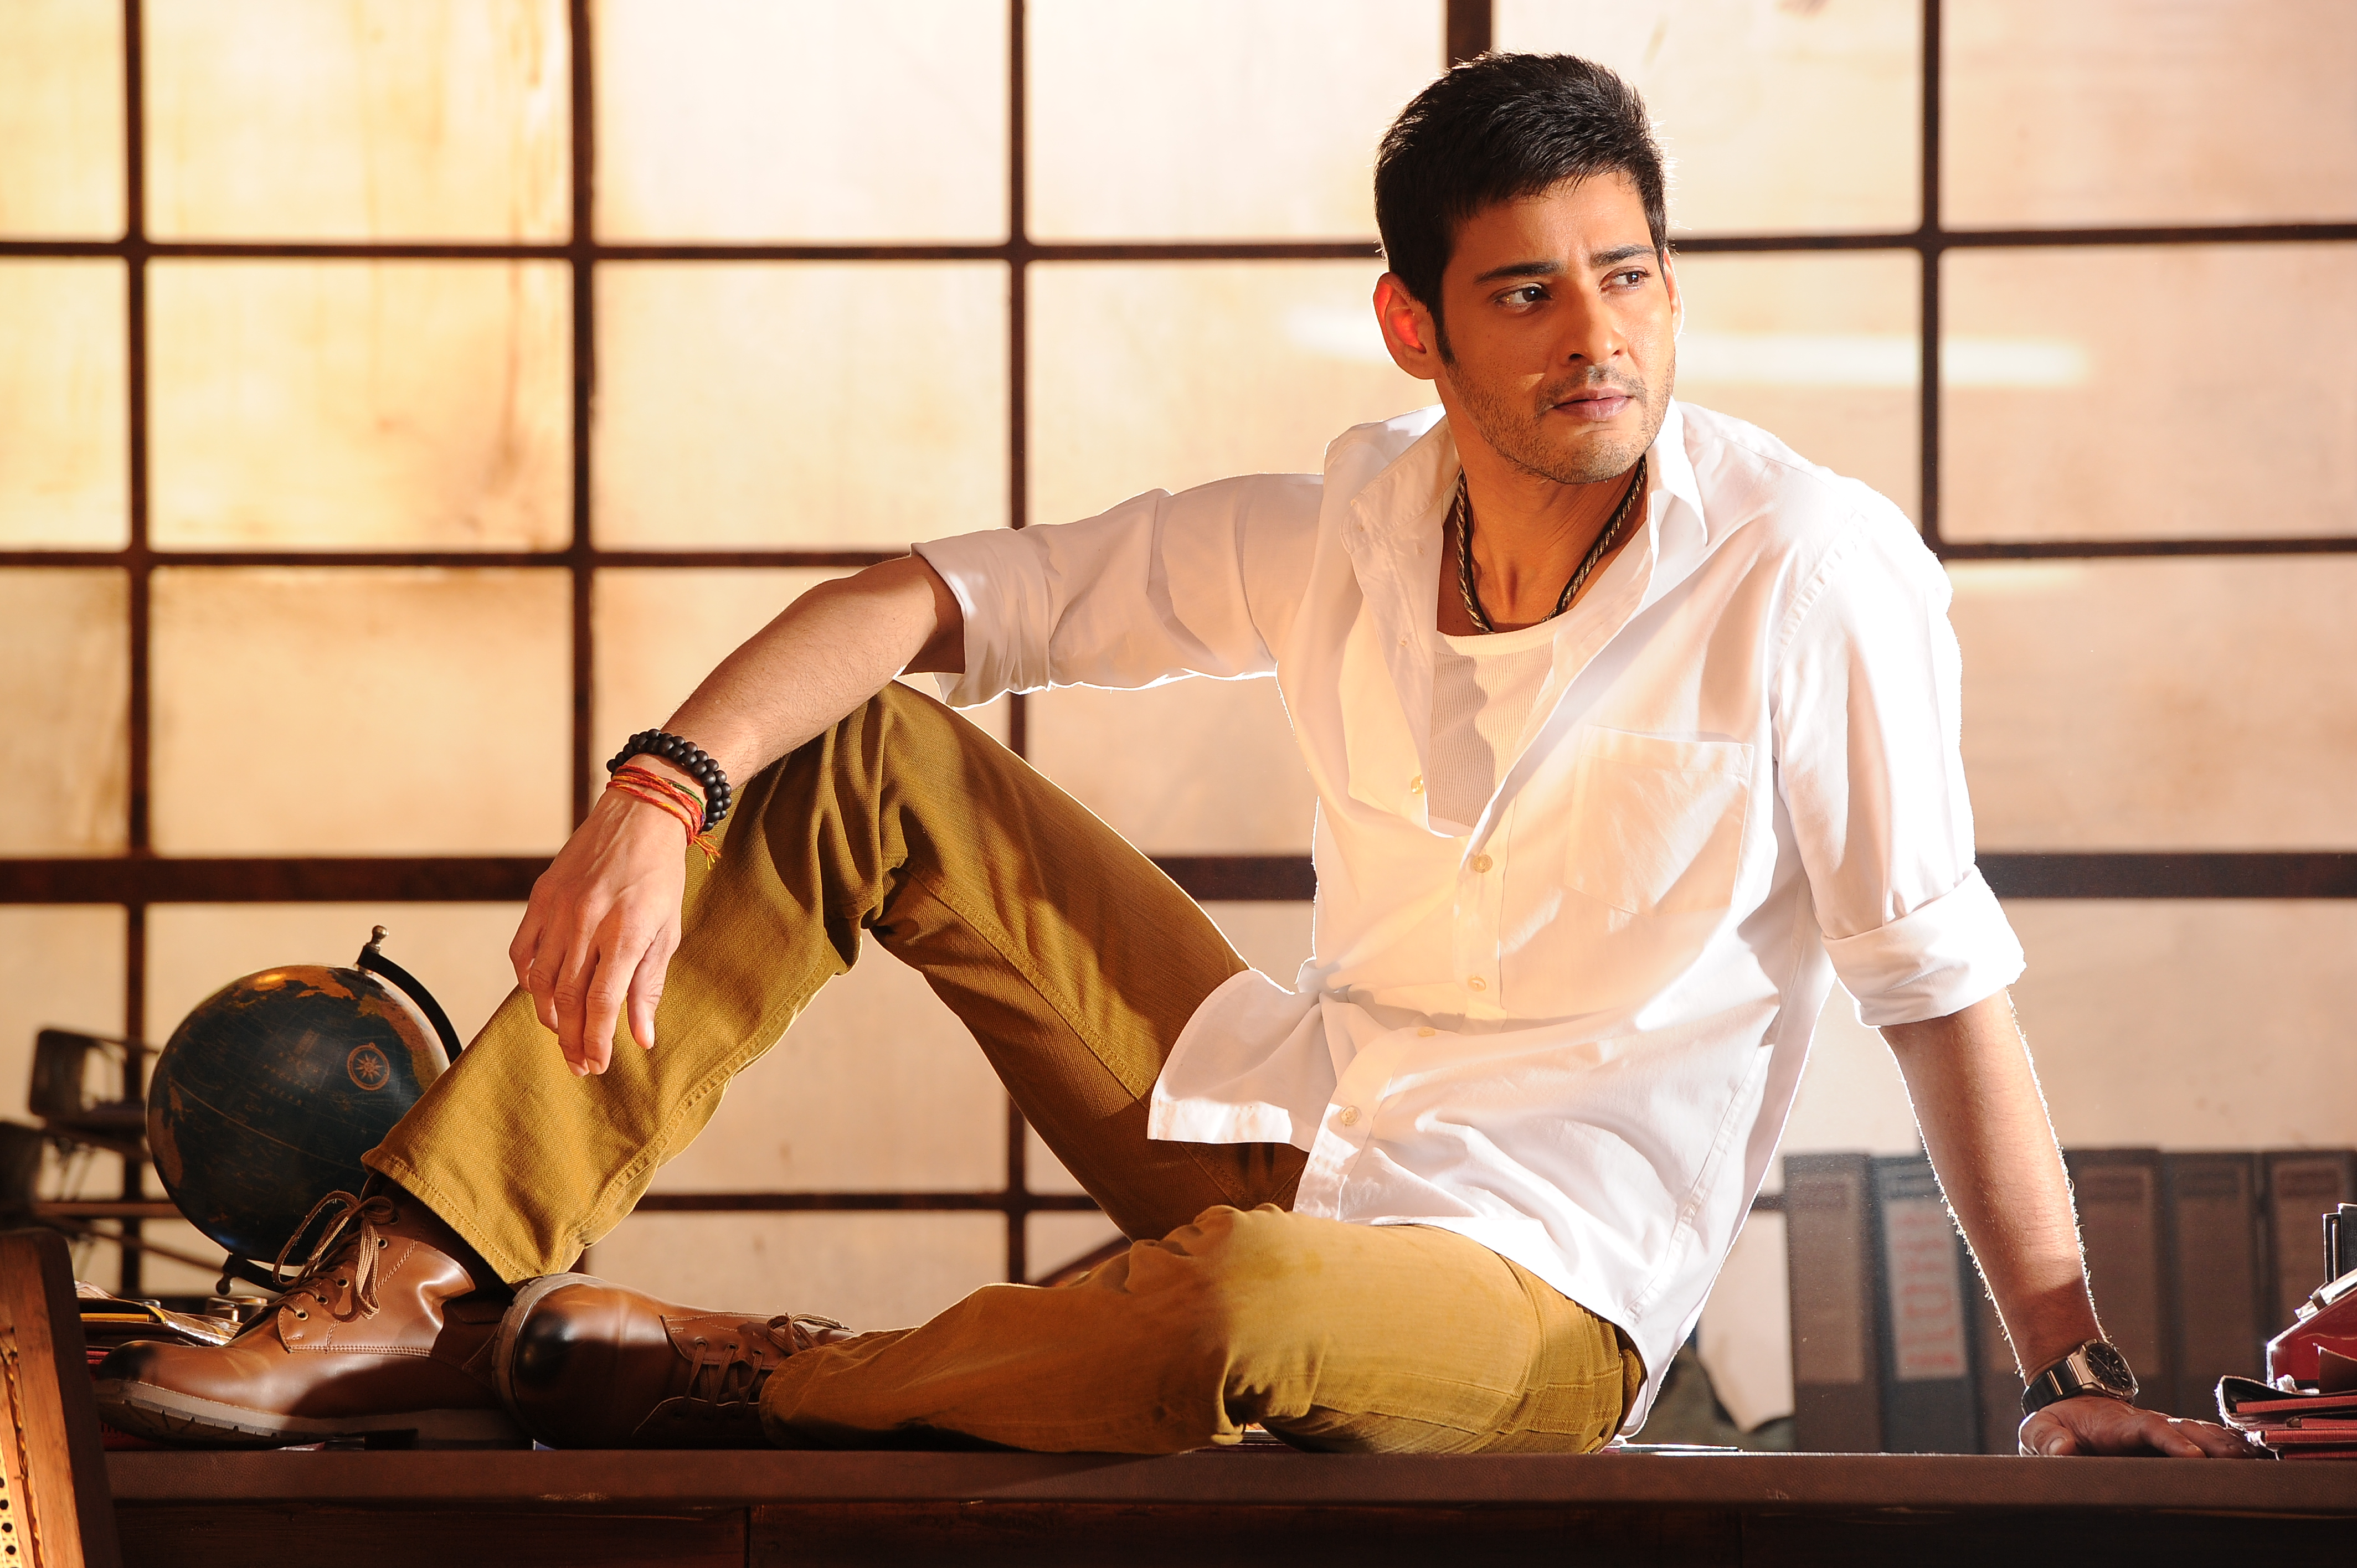 stunning mahesh babu amazing cute style look background free desktop hd laptop wallpaper.JPG